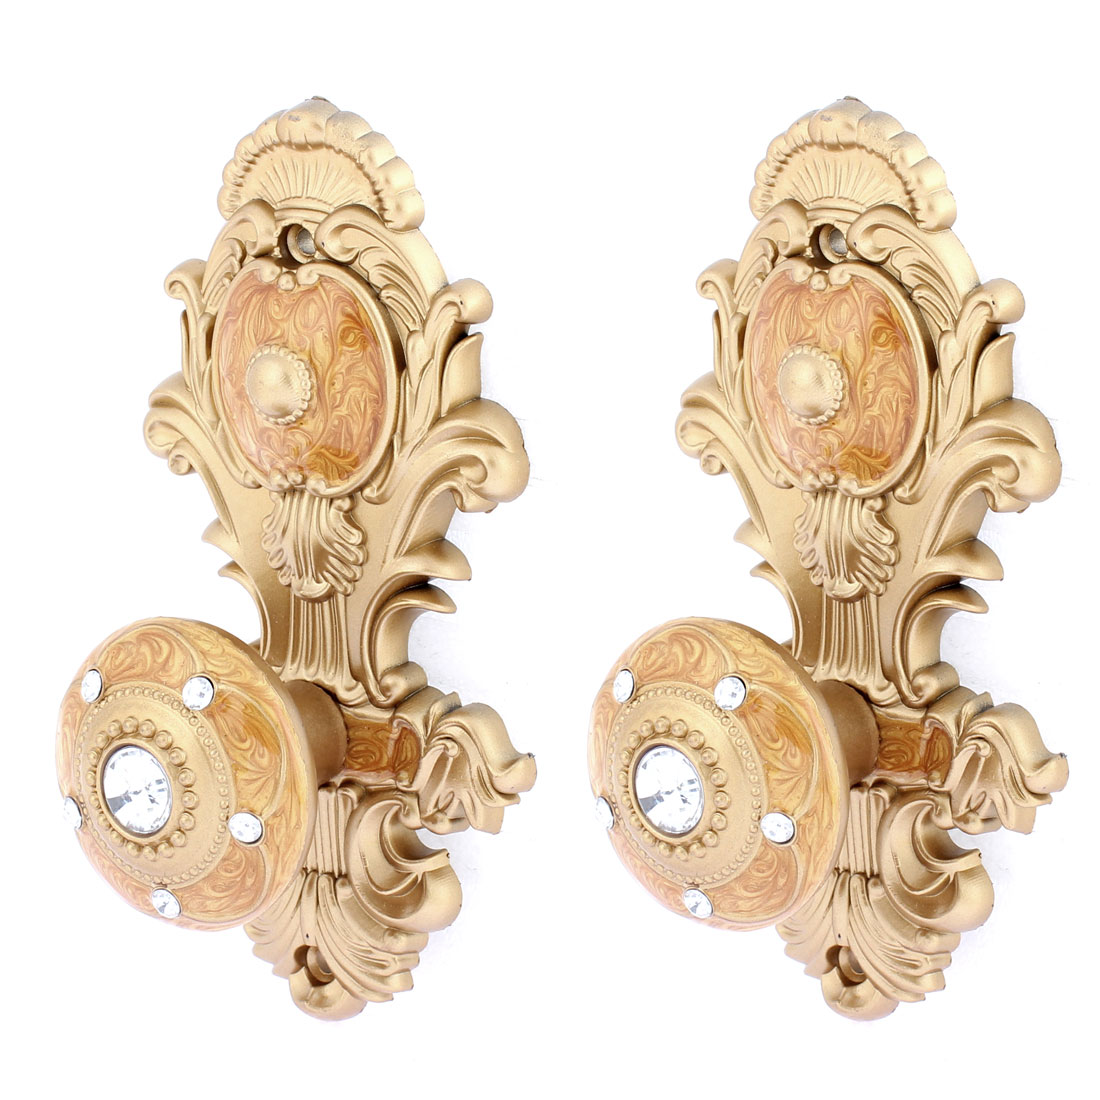 Home Curtain Clothes Towel Screws Mounted Wall Hooks Gold Tone 2Pcs